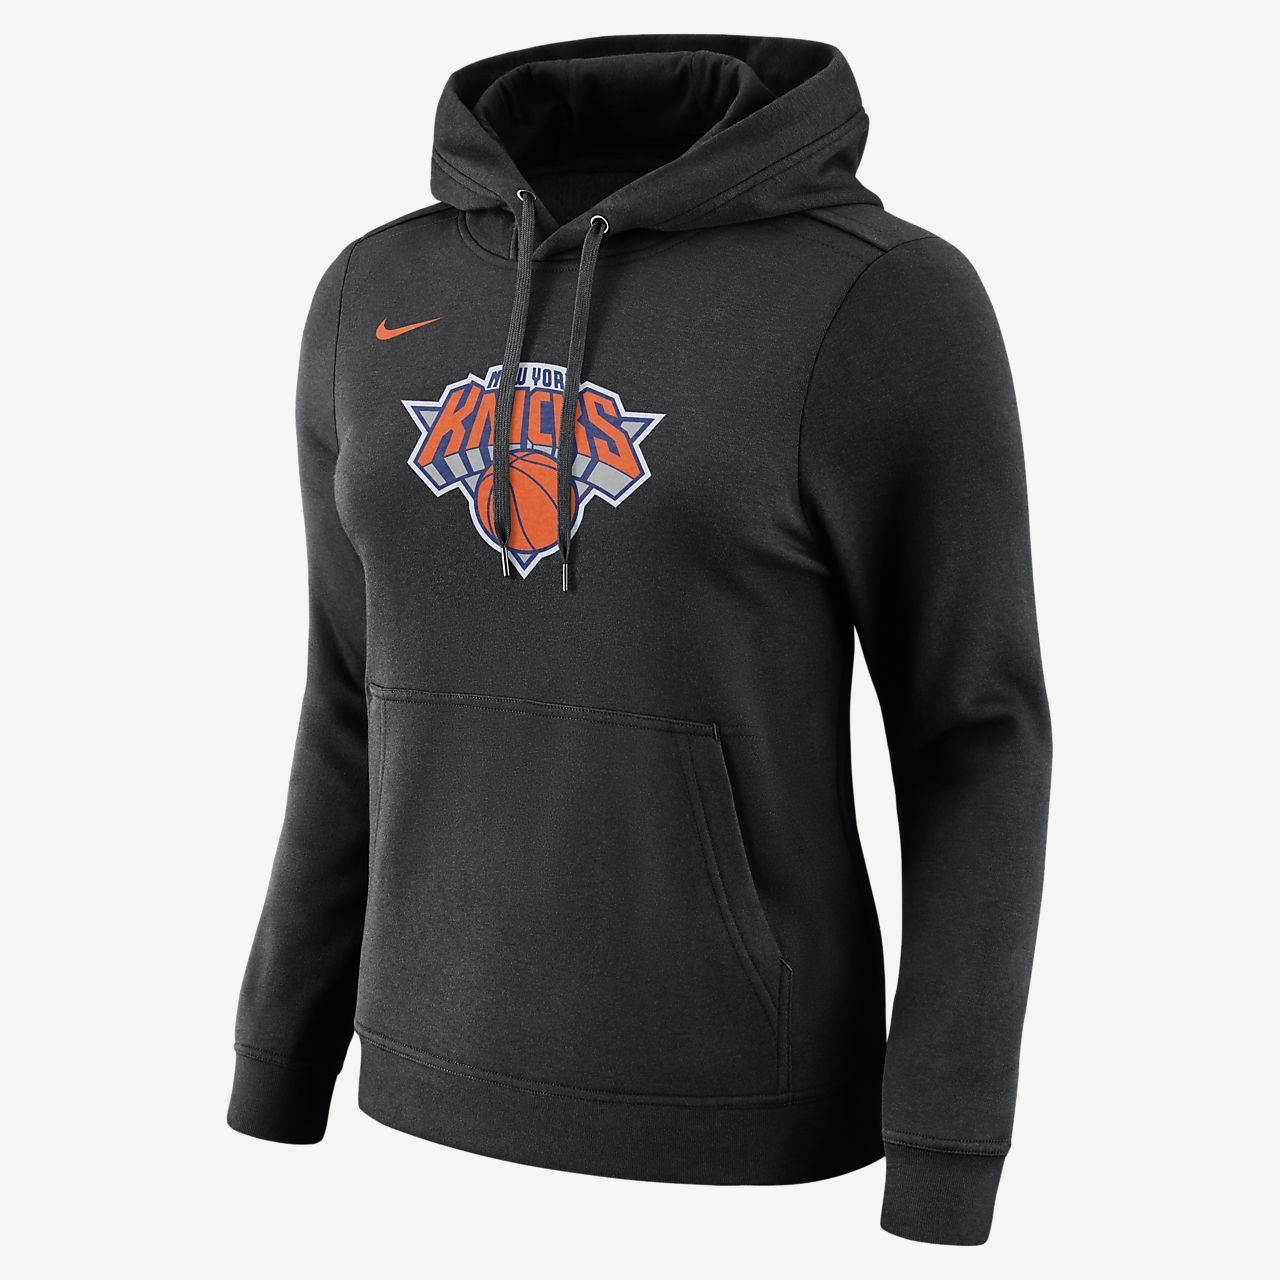 ... New York Knicks Nike Women's Fleece NBA Hoodie